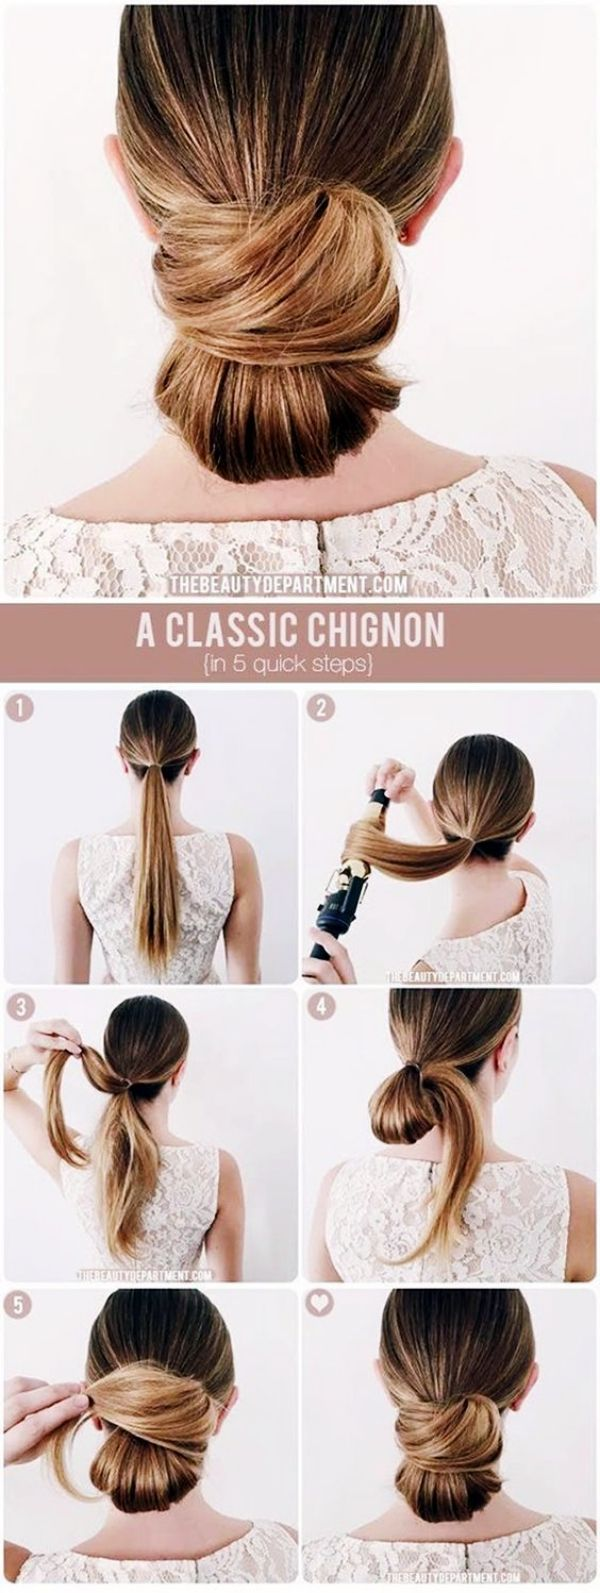 best makeuptips images on pinterest cute hairstyles hairstyle